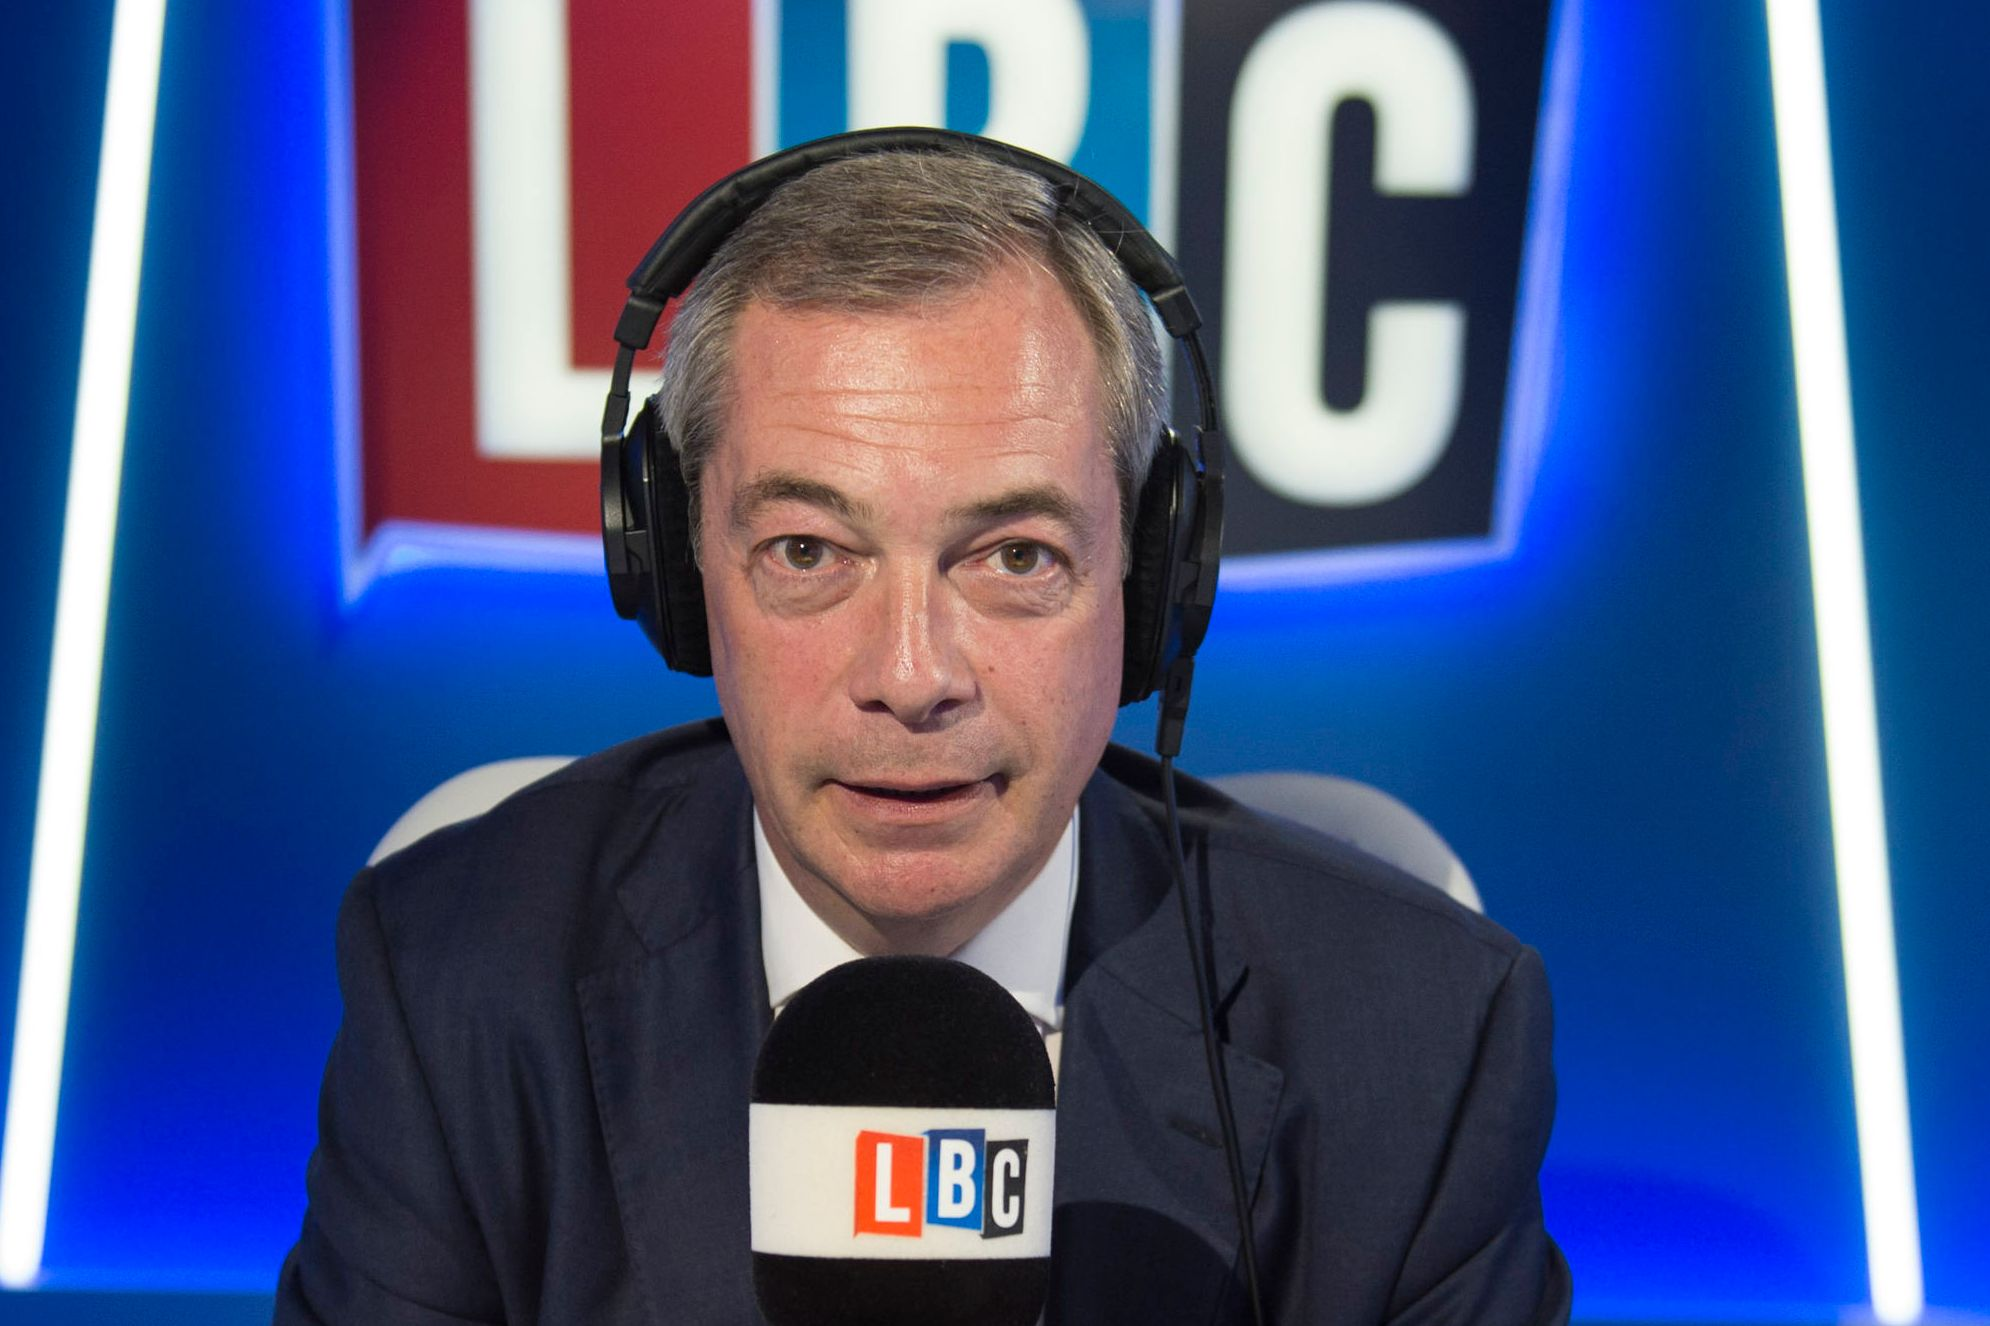 Nigel Farage leaves LBC radio station 'with immediate effect' giving bosses just hours to fill slot after con - The Sun